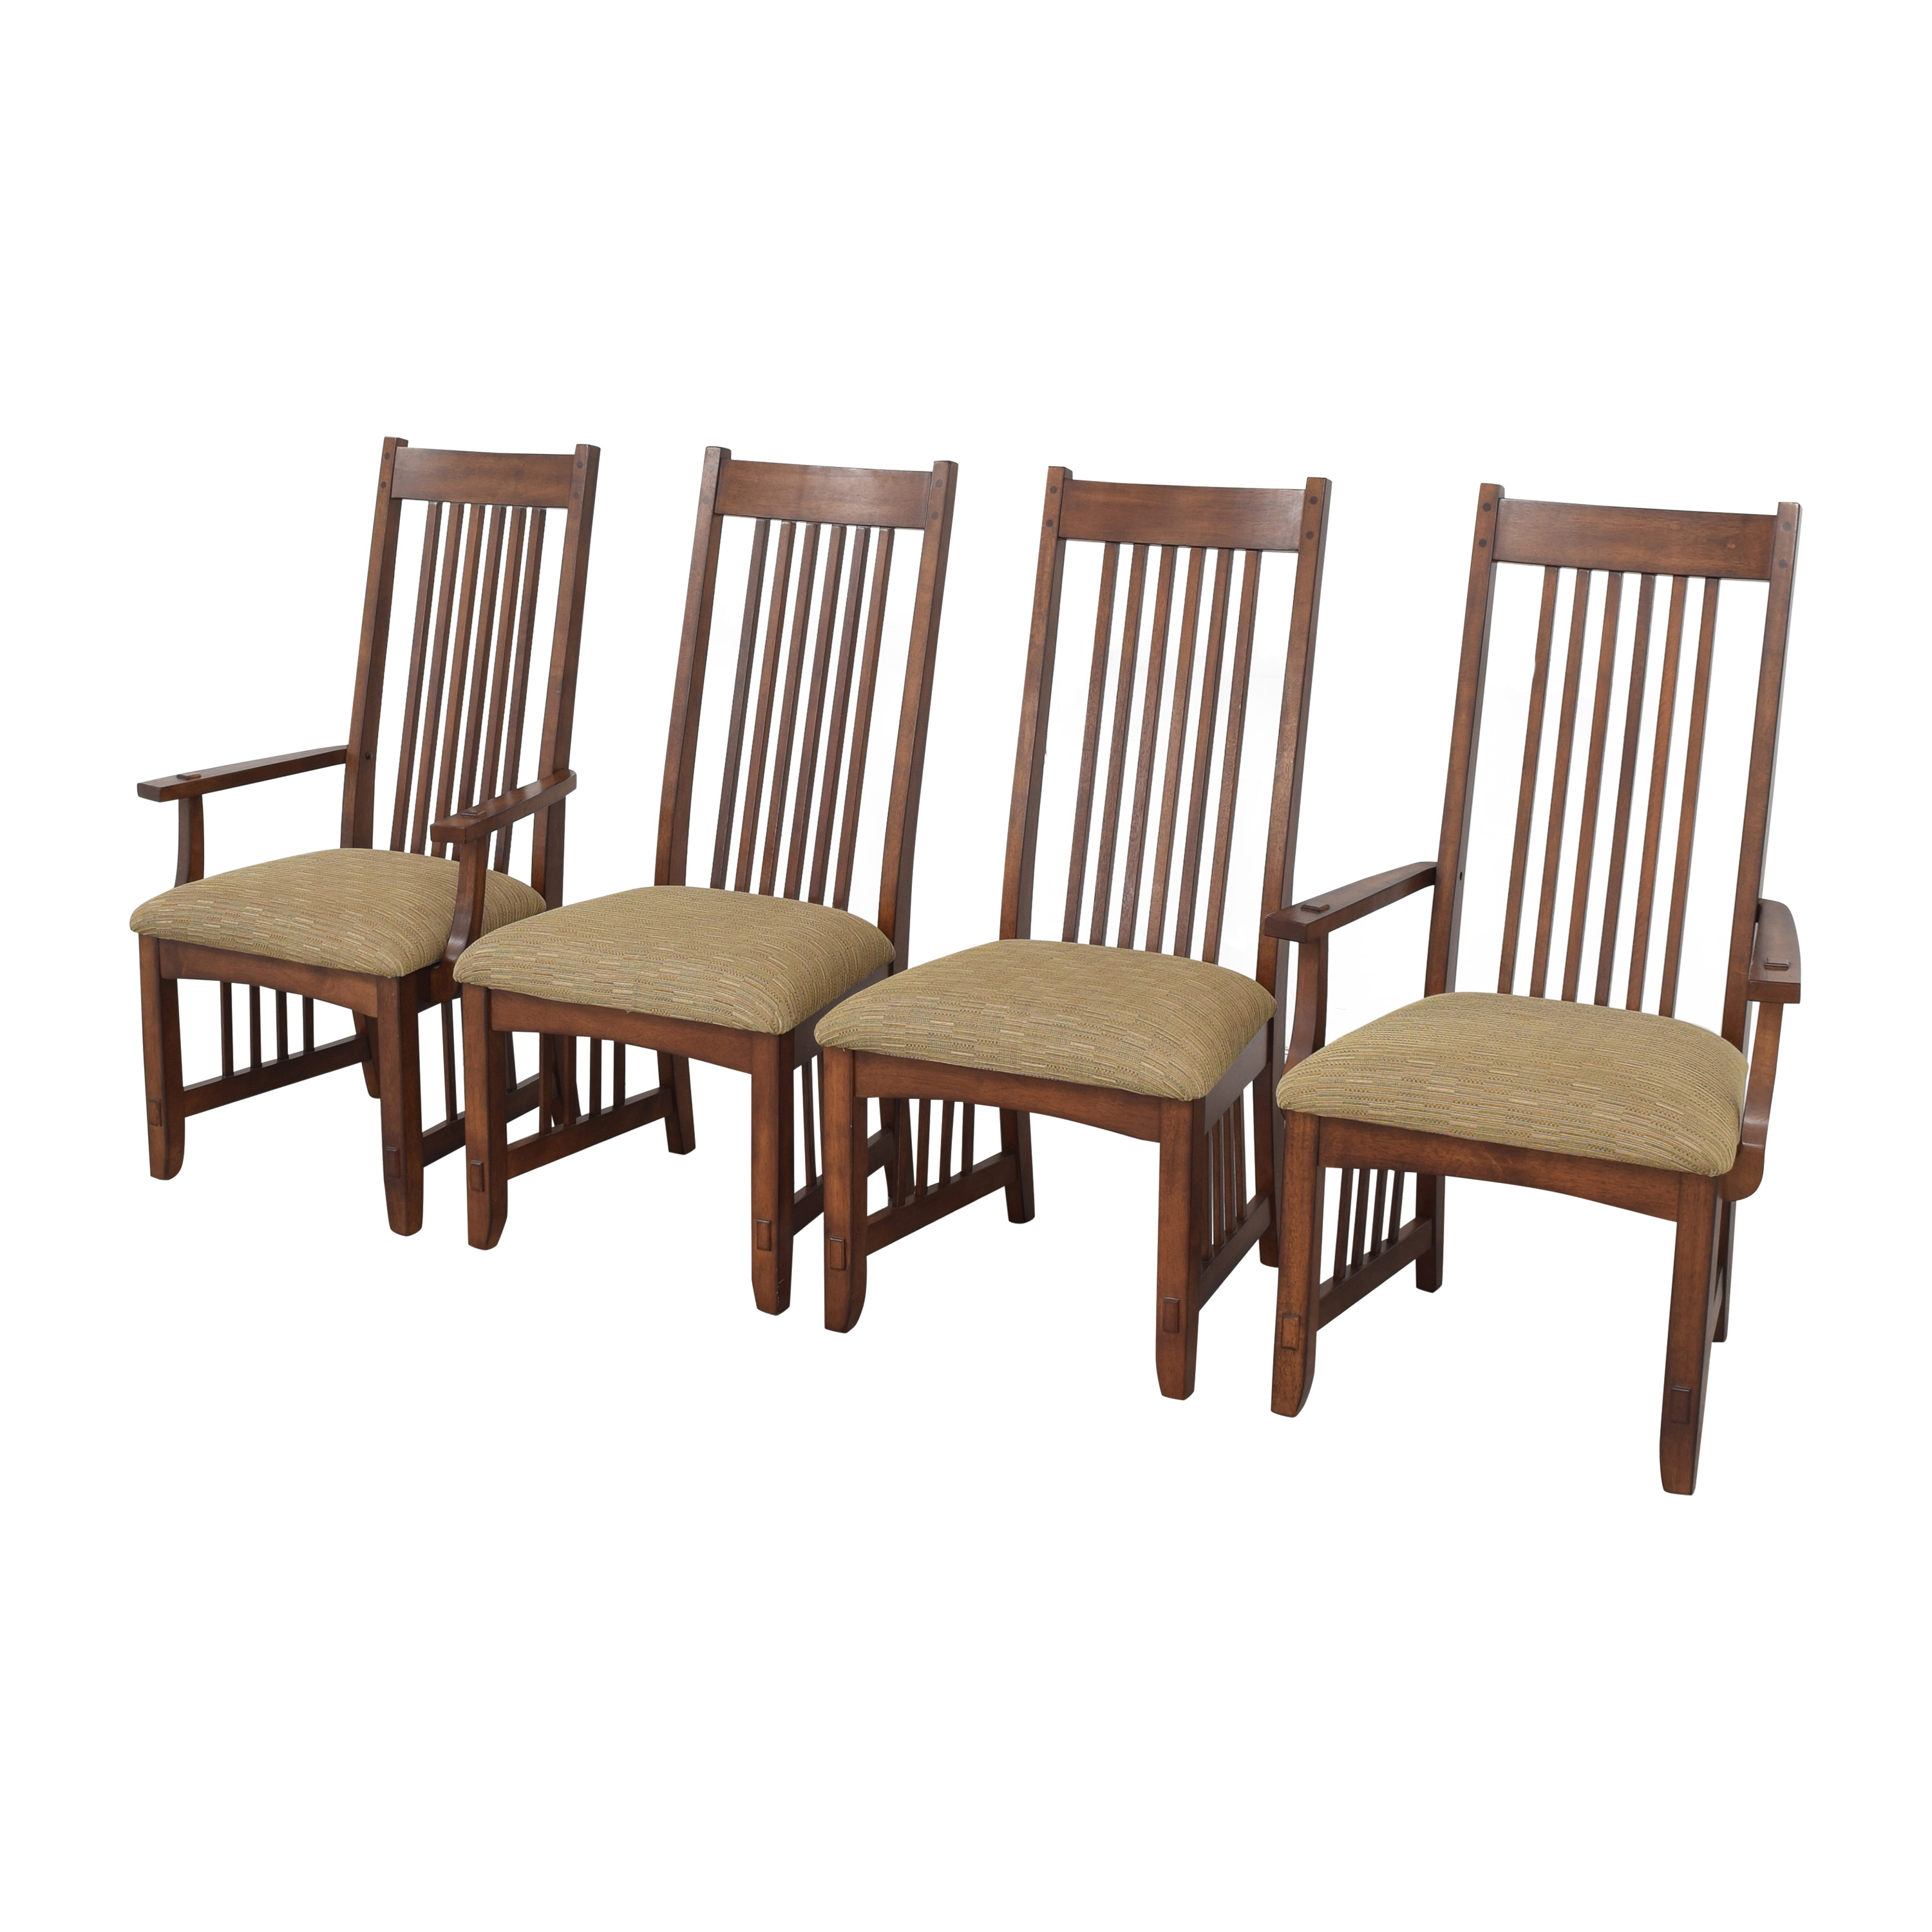 Green River Furniture Green River Mission Style Dining Chairs price